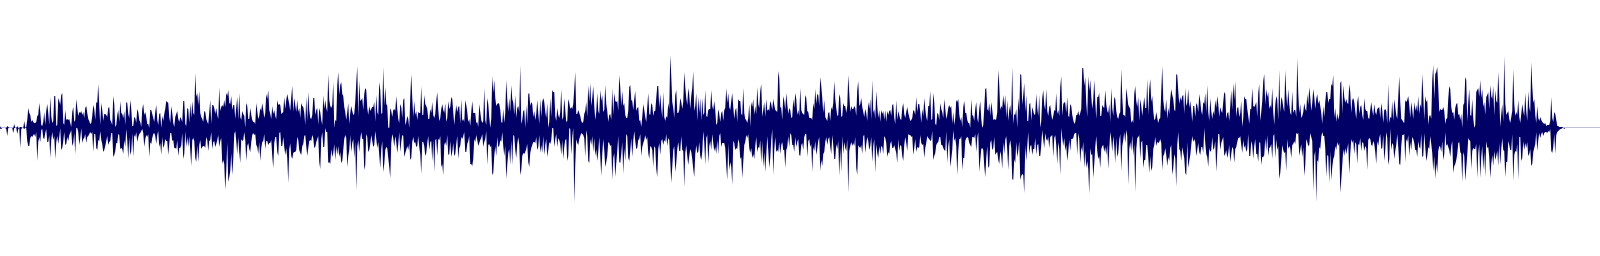 waveform of track #139552